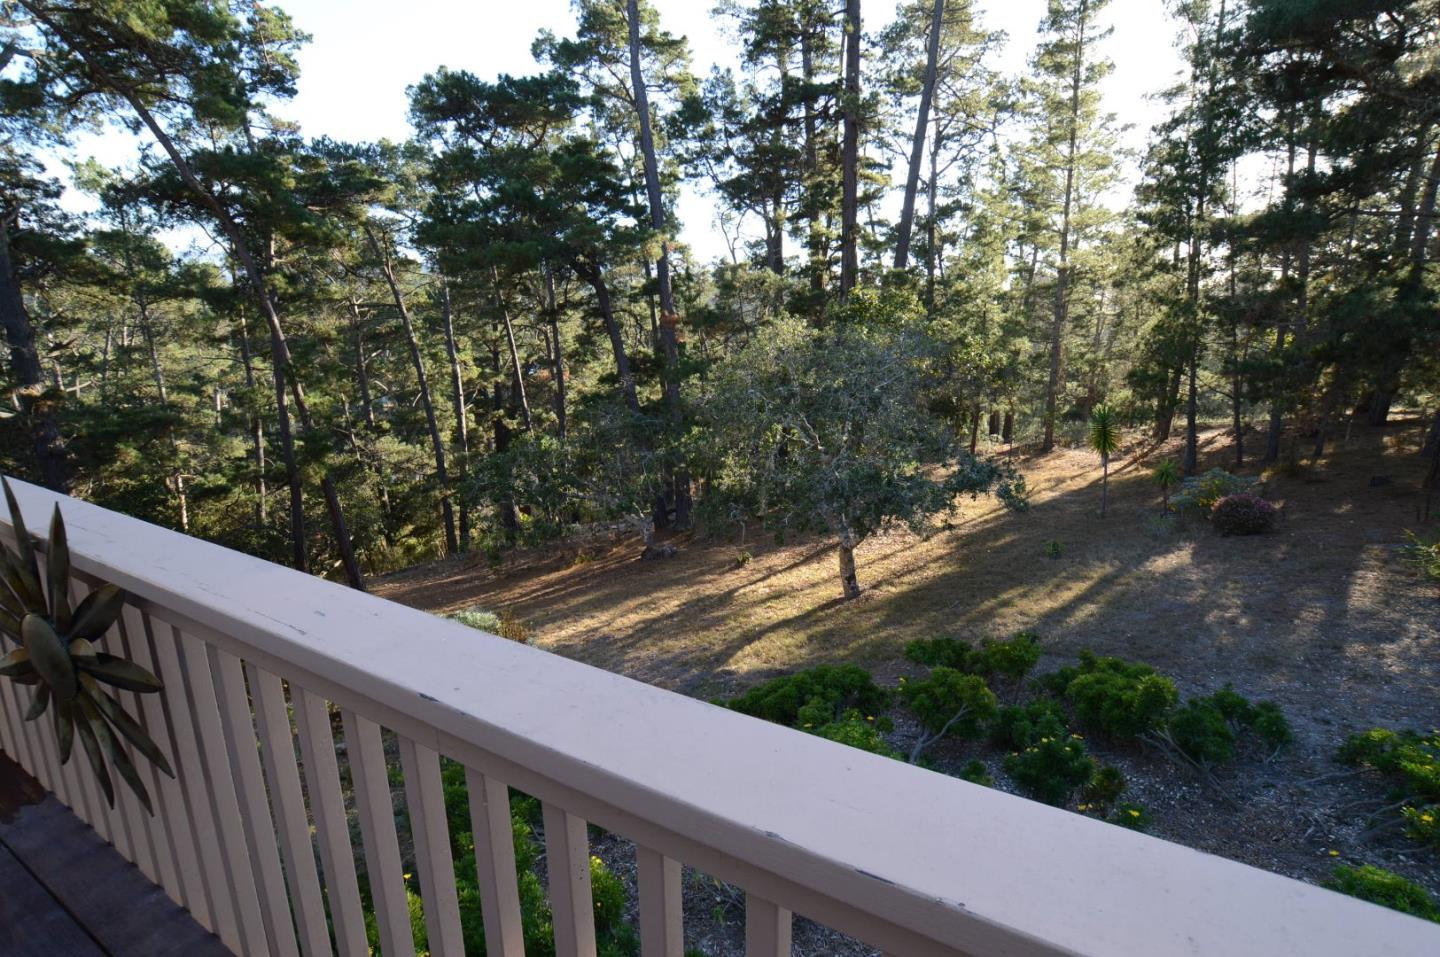 Additional photo for property listing at 25350 Pine Hills Dr  CARMEL, CALIFORNIA 93923